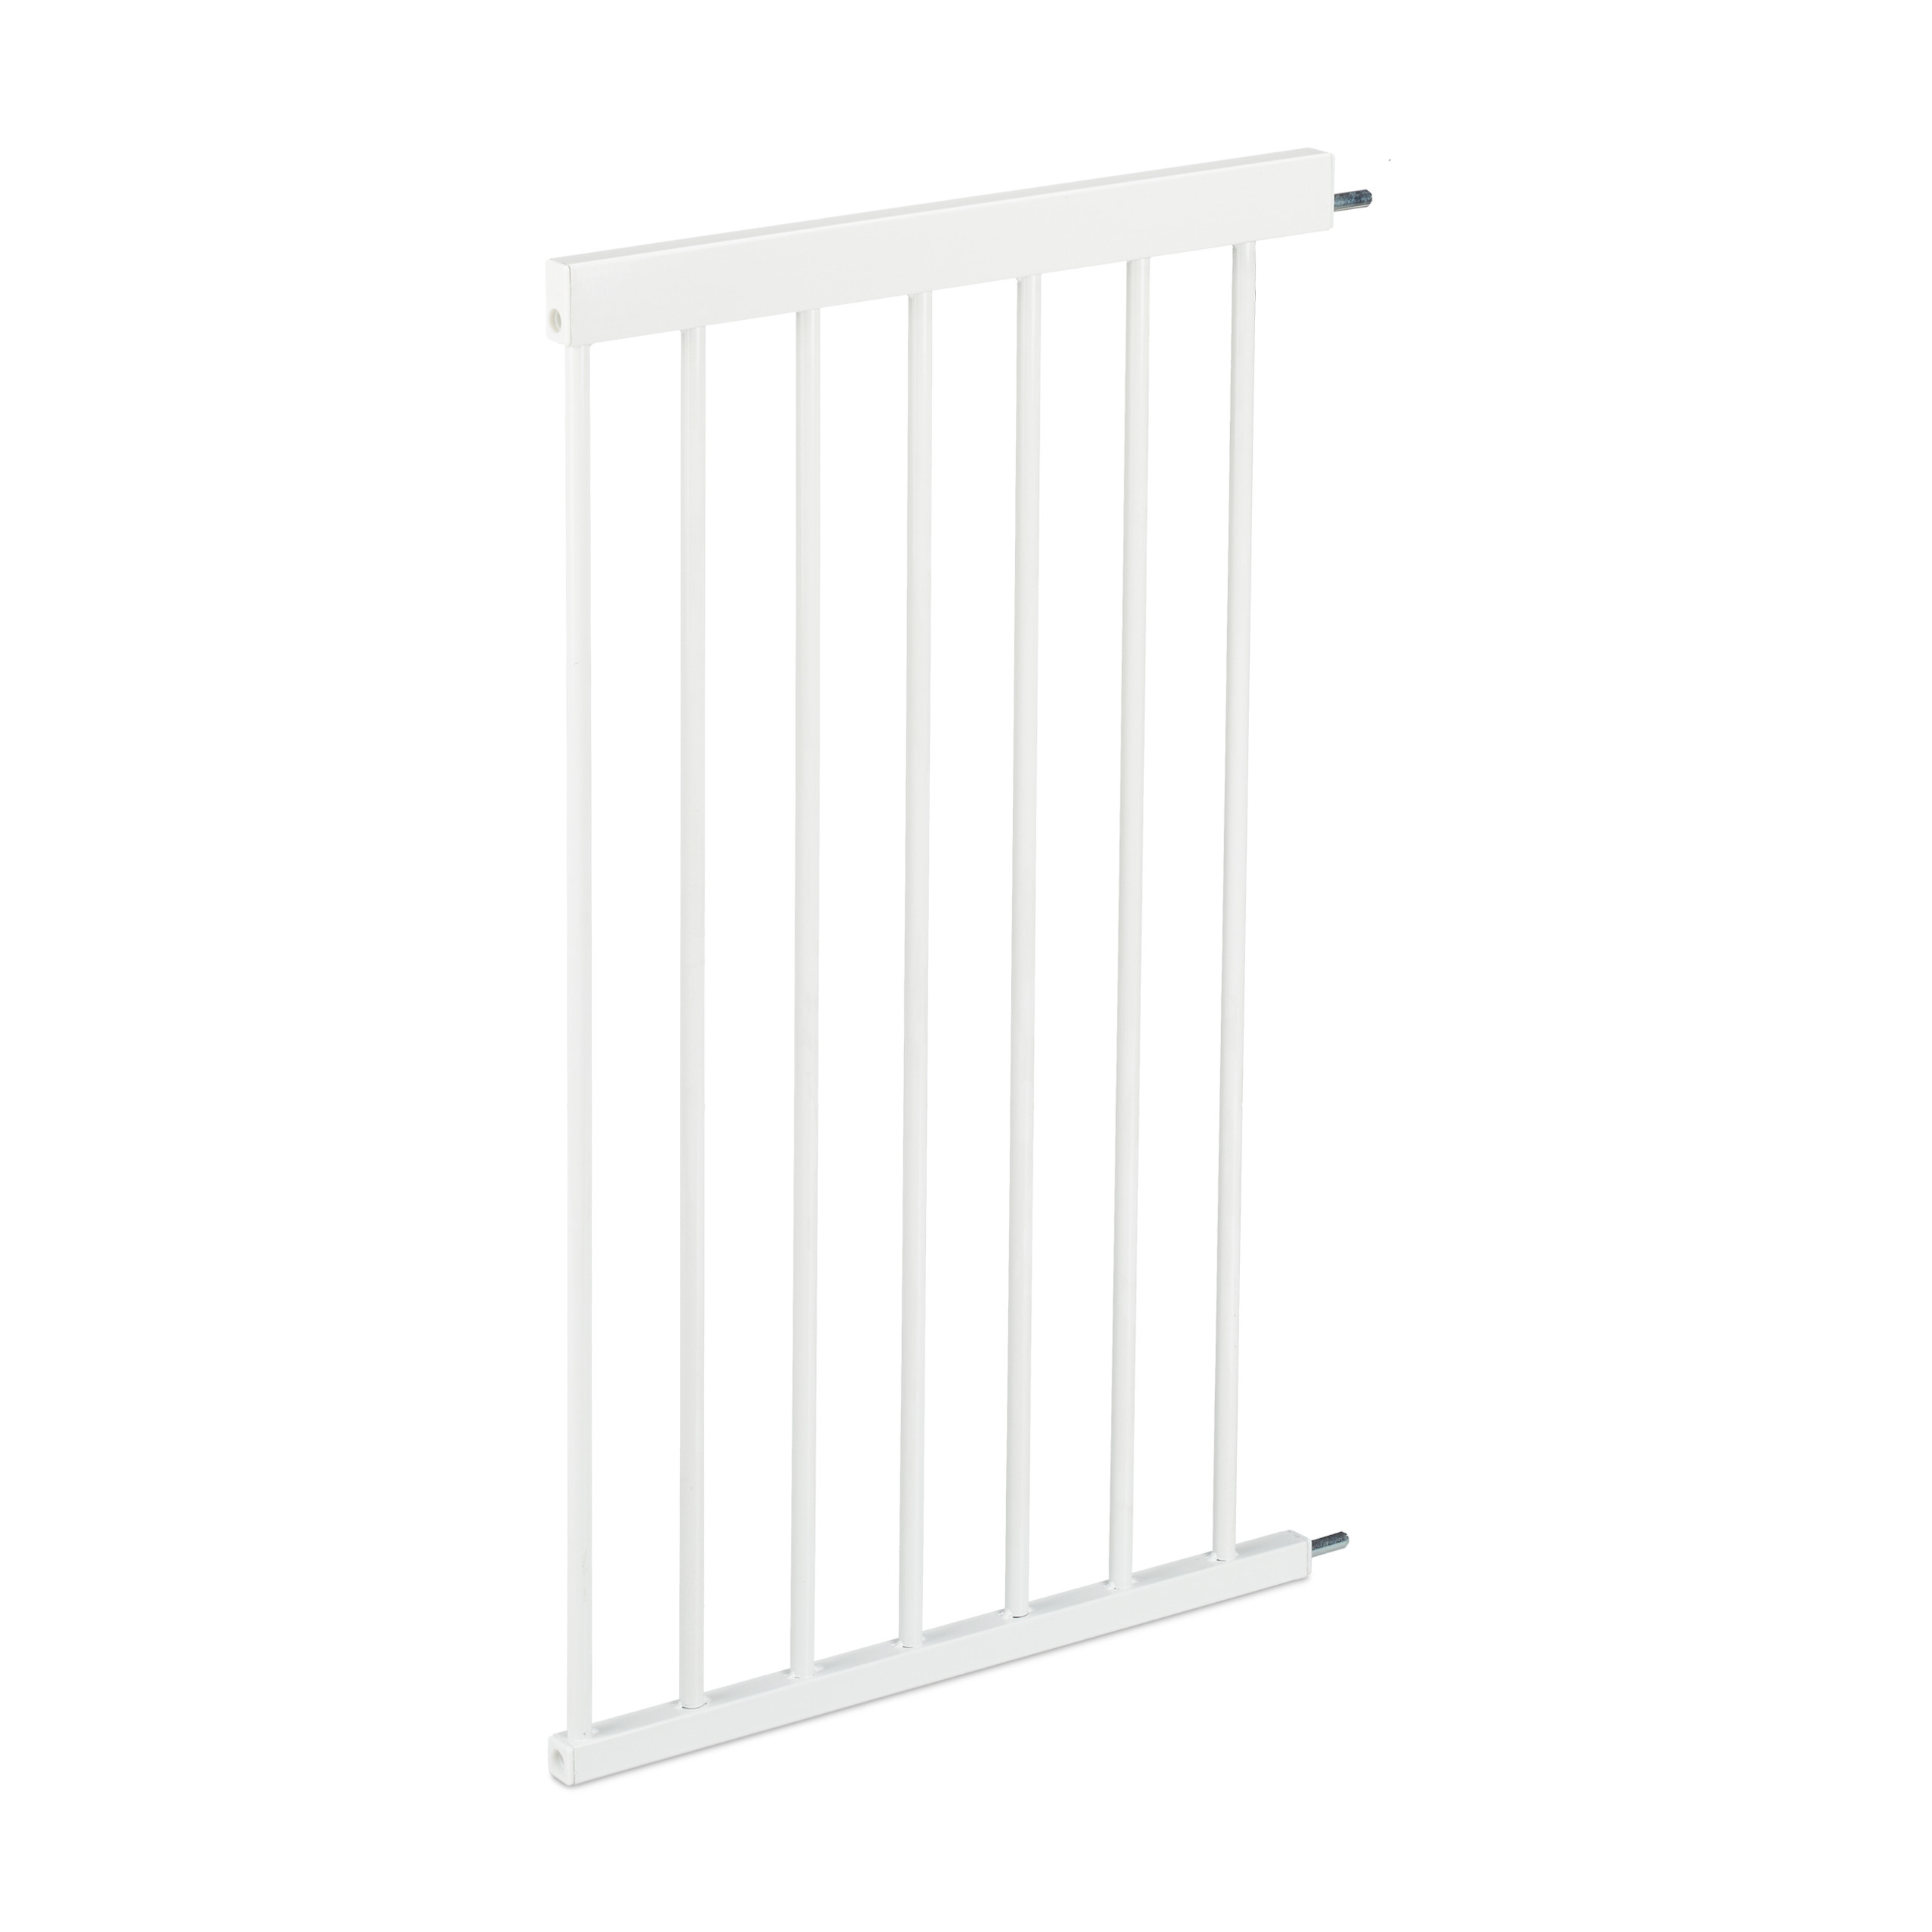 Pressure-Fit-Baby-Safety-Gate-Extension-Security-Barrier-for-Stairs-and-Doors thumbnail 33